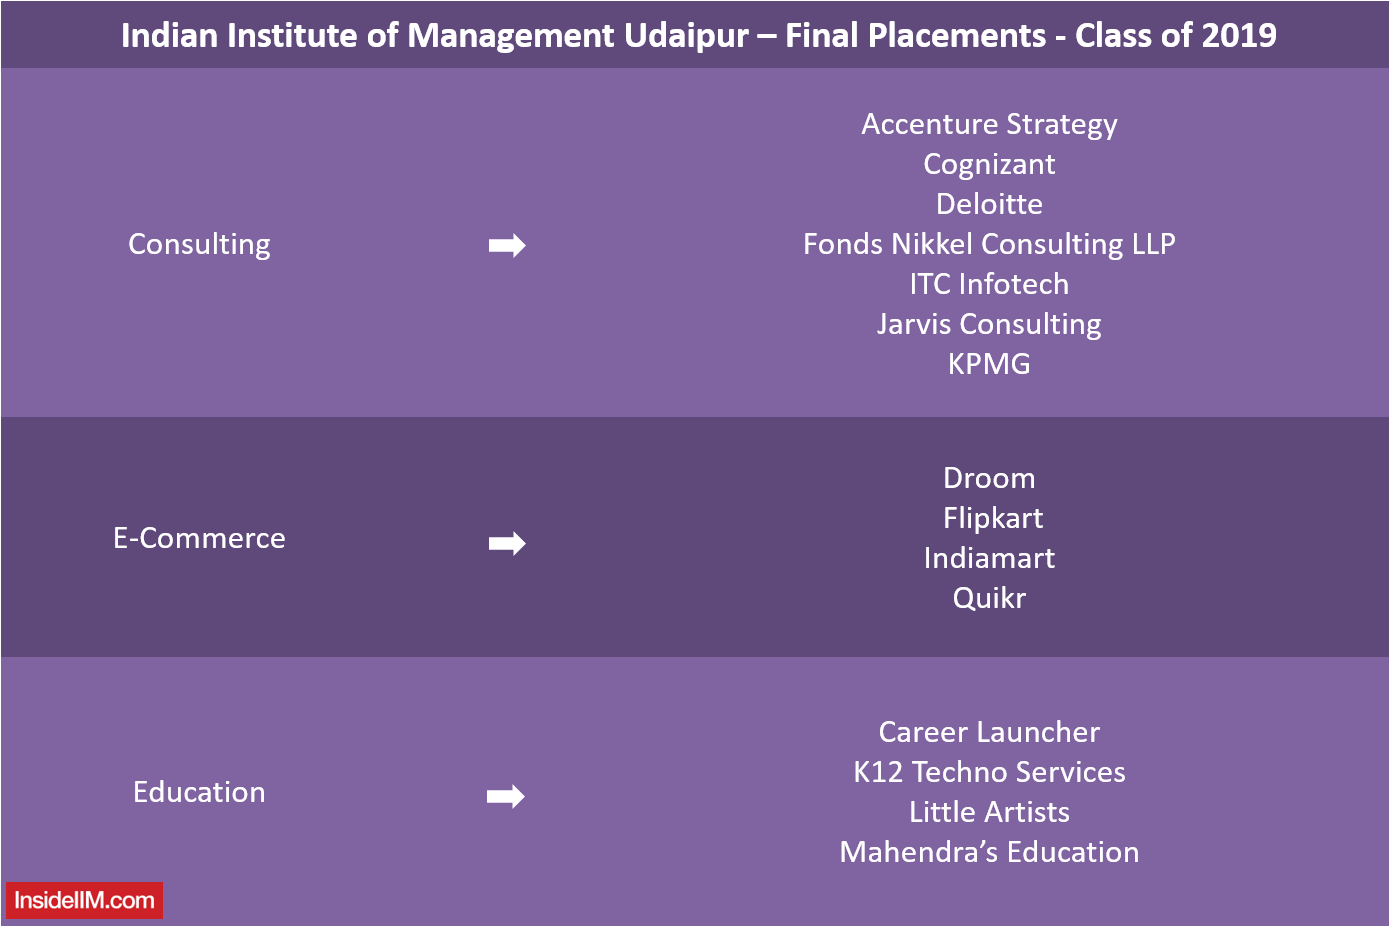 IIM Udaipur Placements - 2019 - Companies: Consulting, E-Commerce, Education